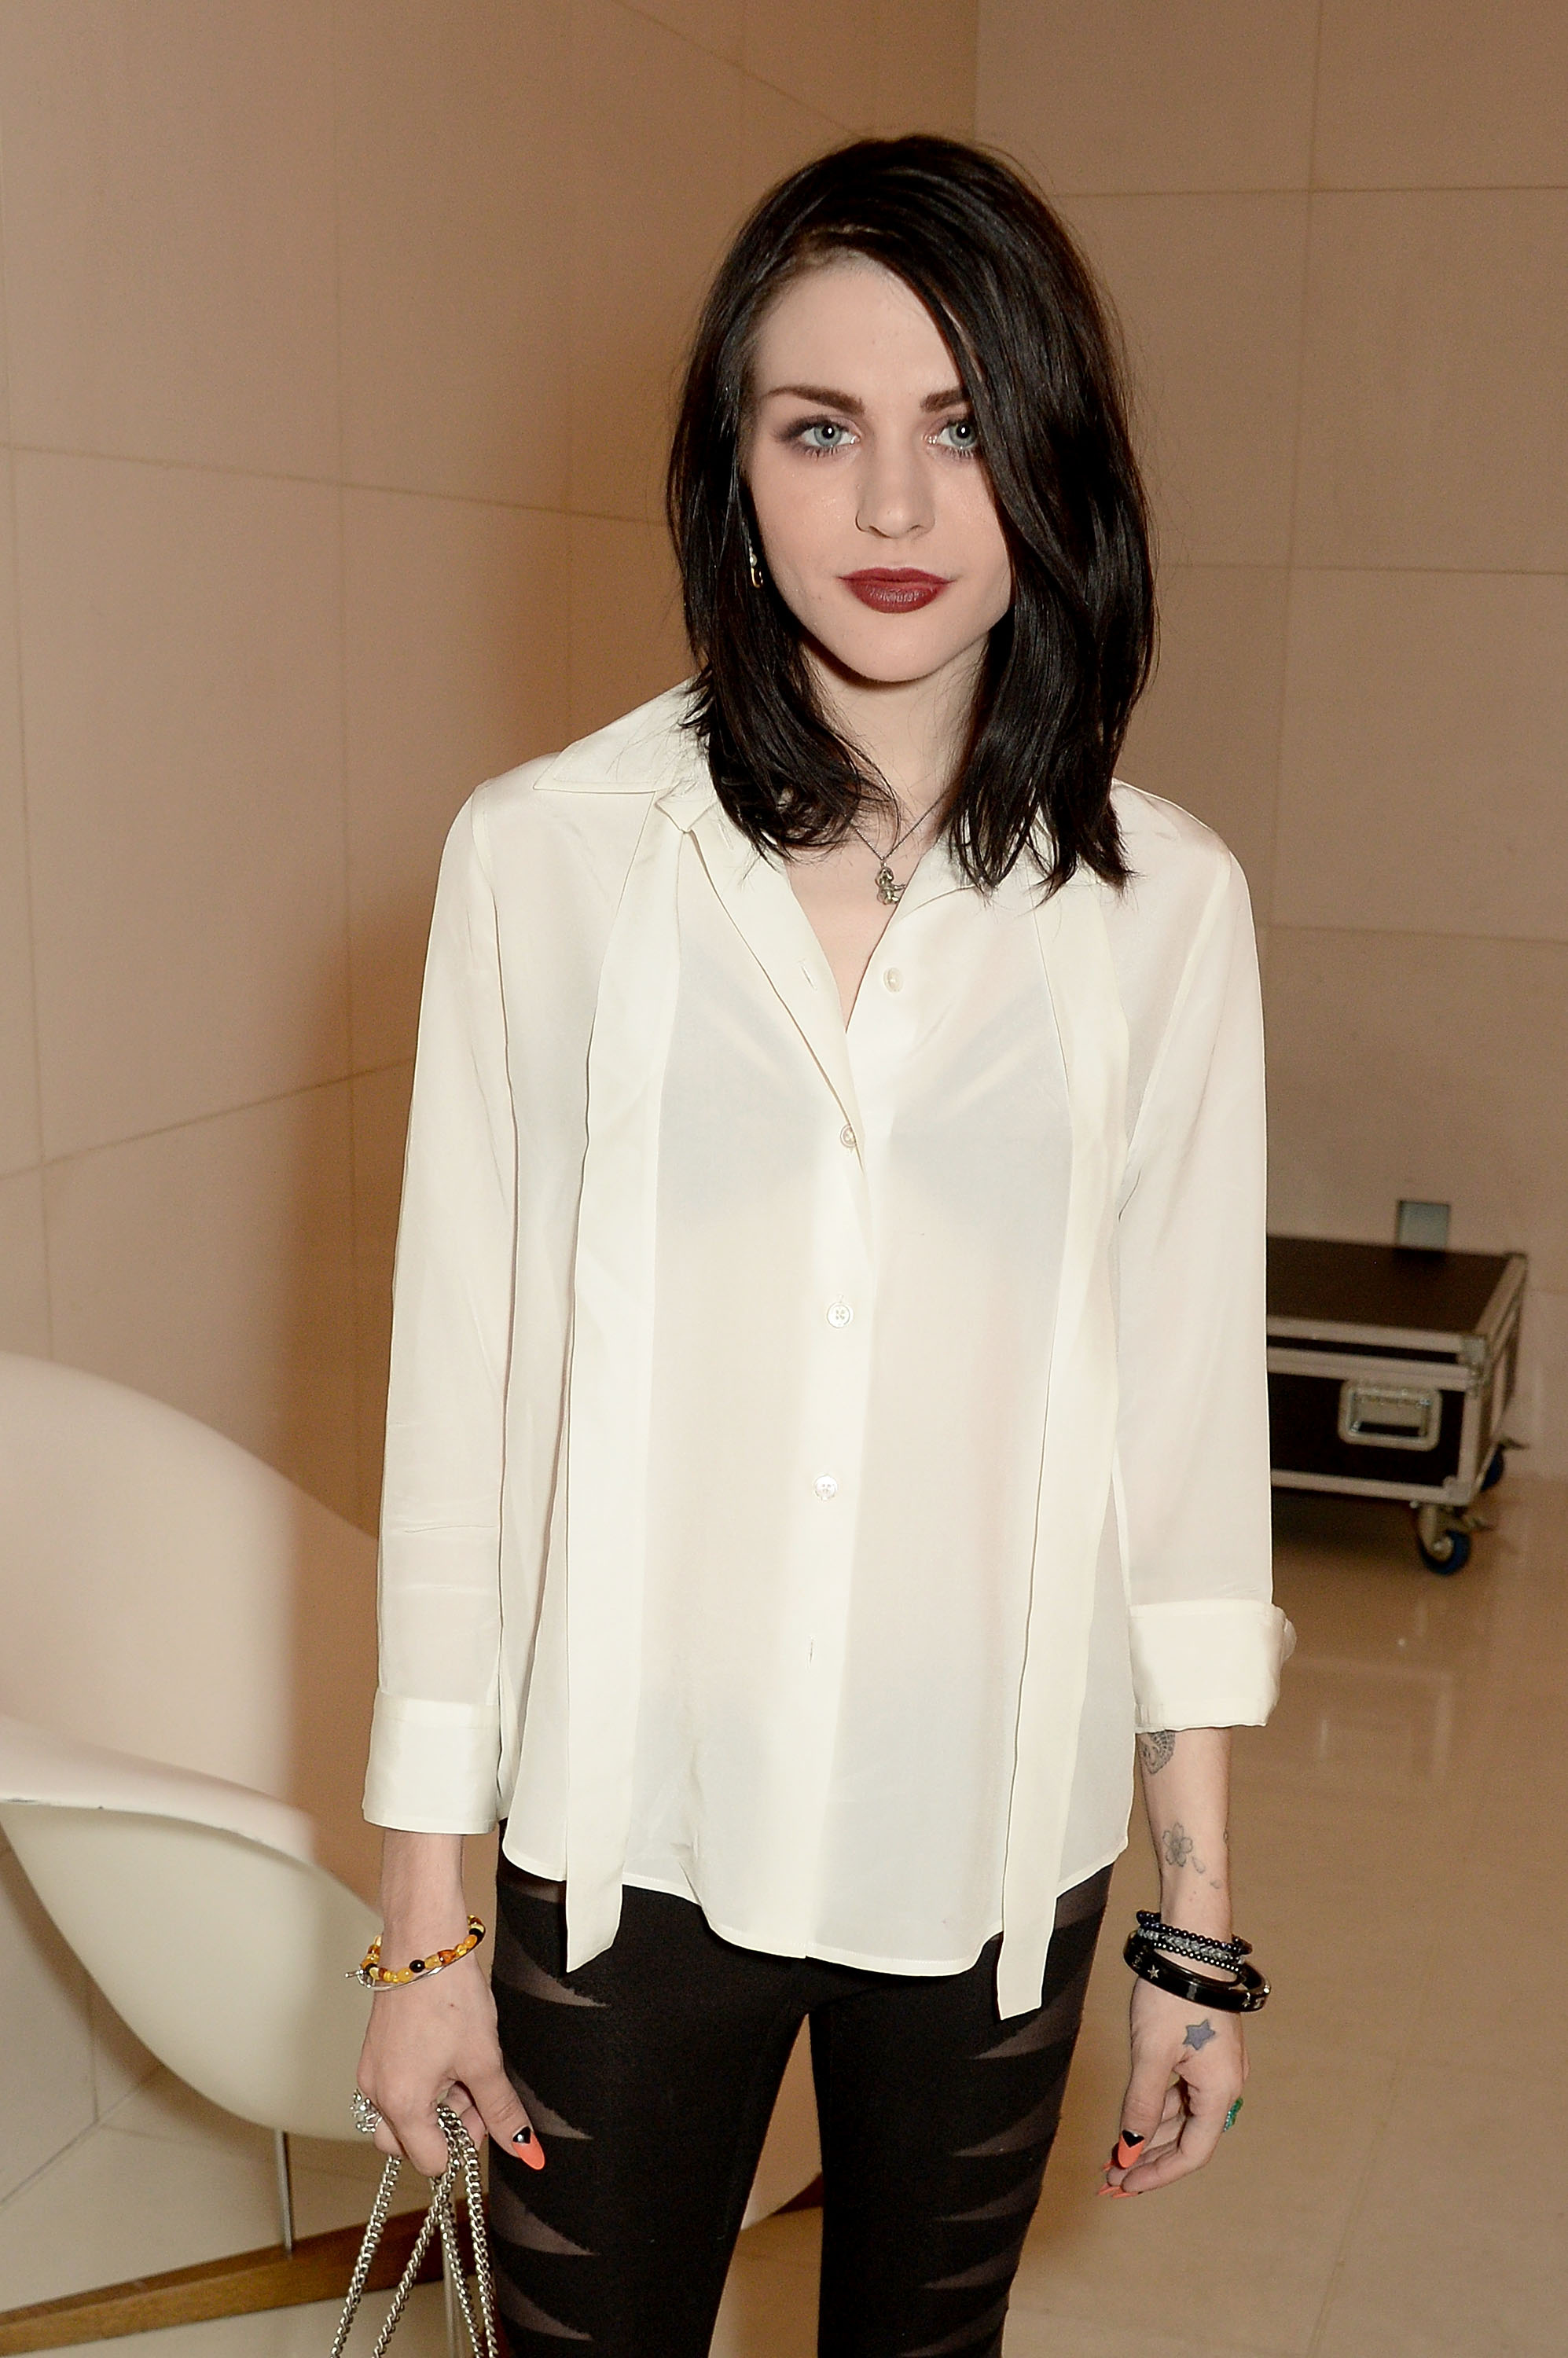 Frances Bean Cobain attends a special In Conversation event with Courtney Love as part of the Liberatum 'Women in Creativity' series, March 21, 2016 in London, England